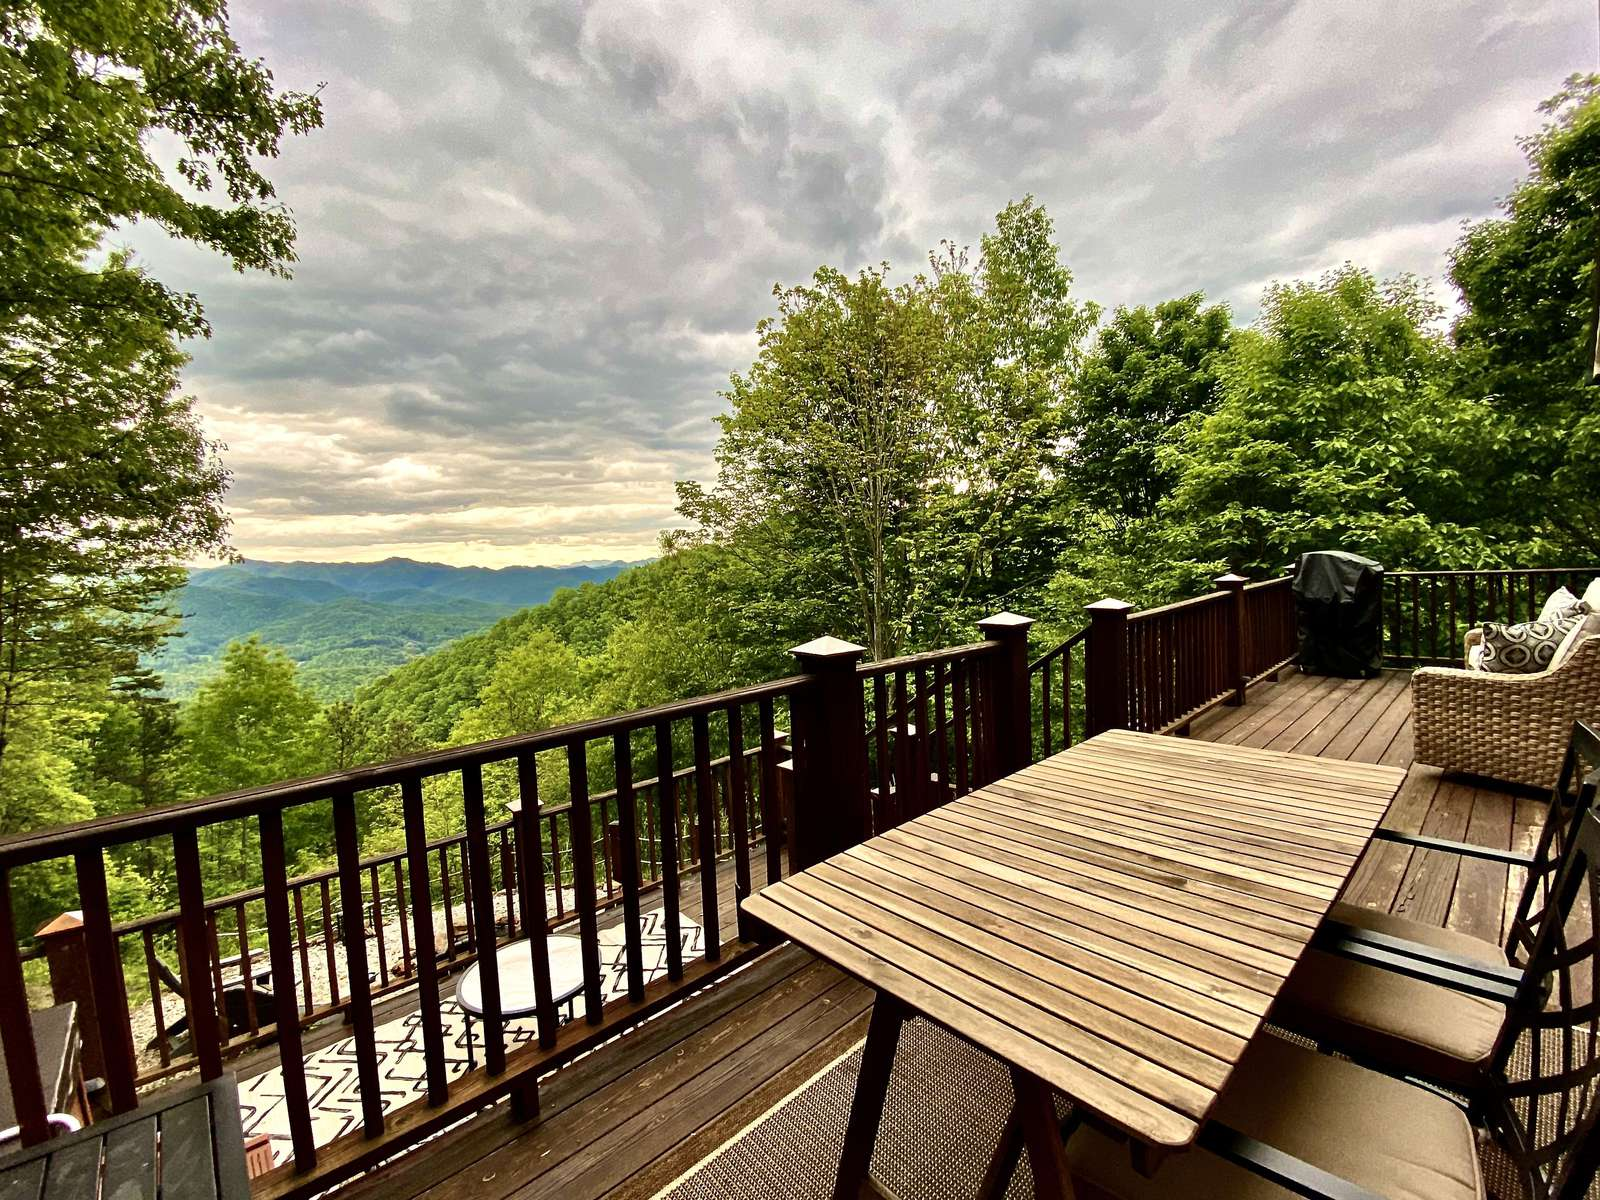 Multi-Level View Deck is ideal for relaxing and taking in the Gorgeous Views - property